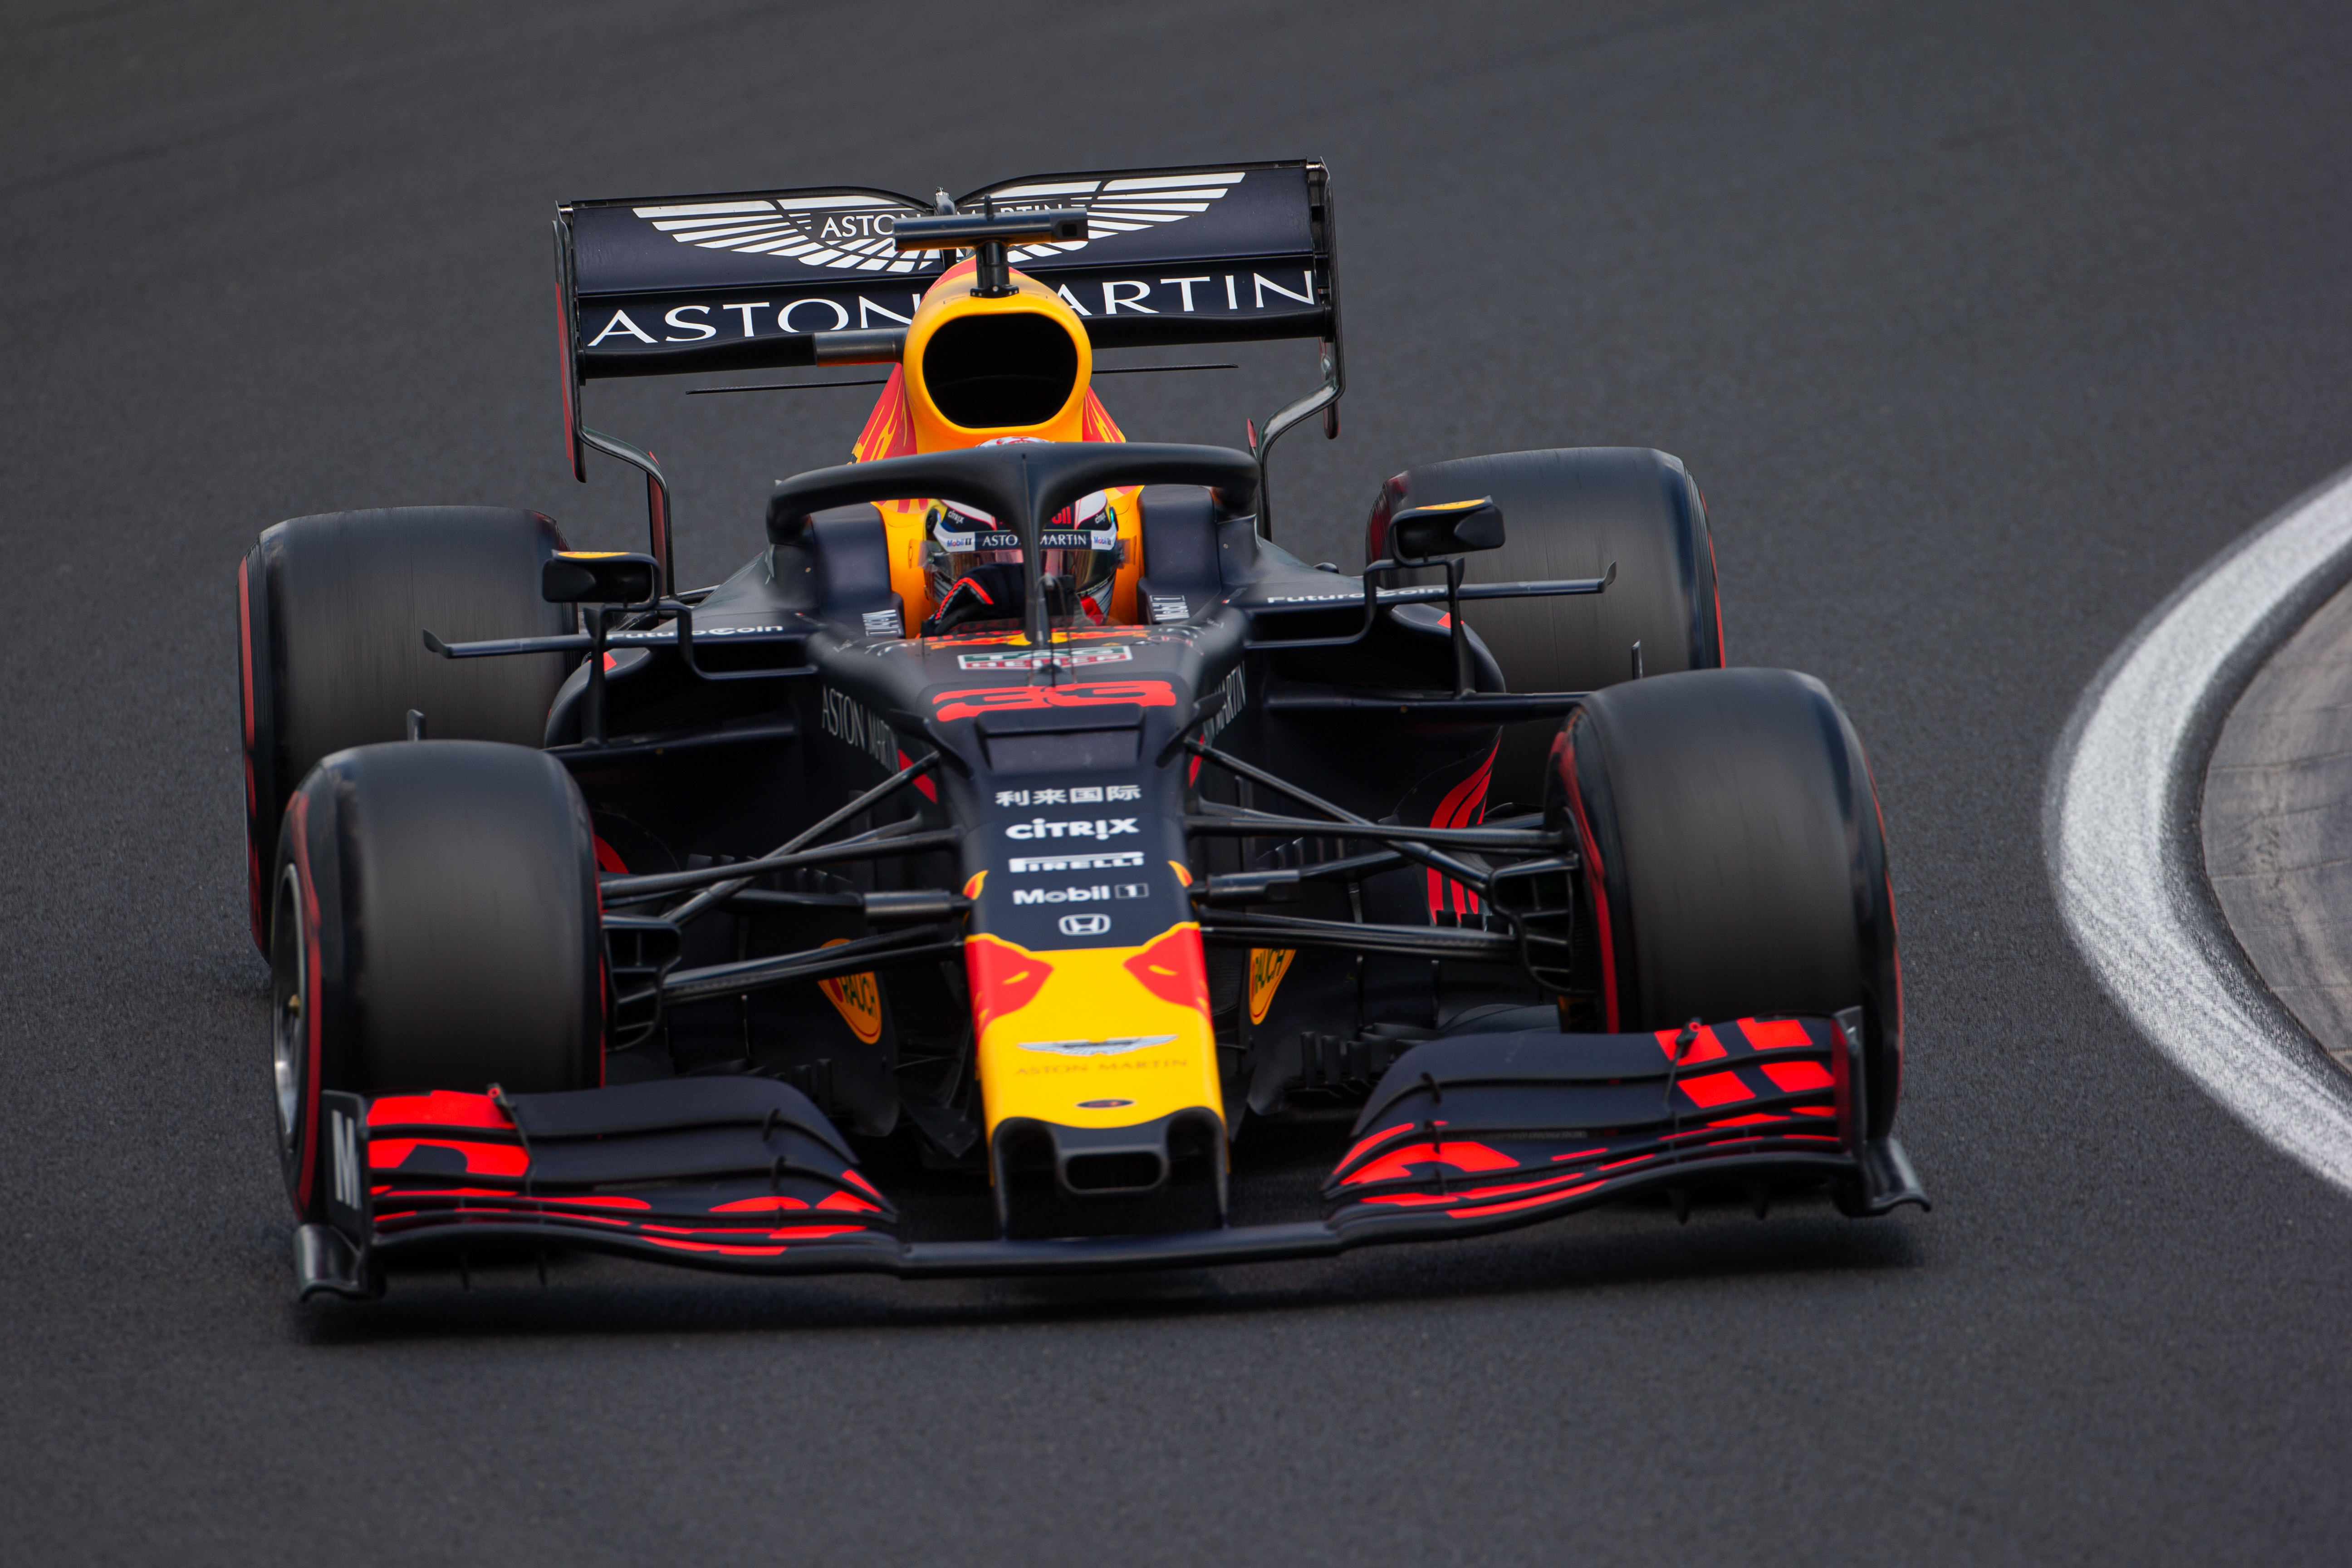 Deconstructing Verstappen What Makes Him So Good The Race